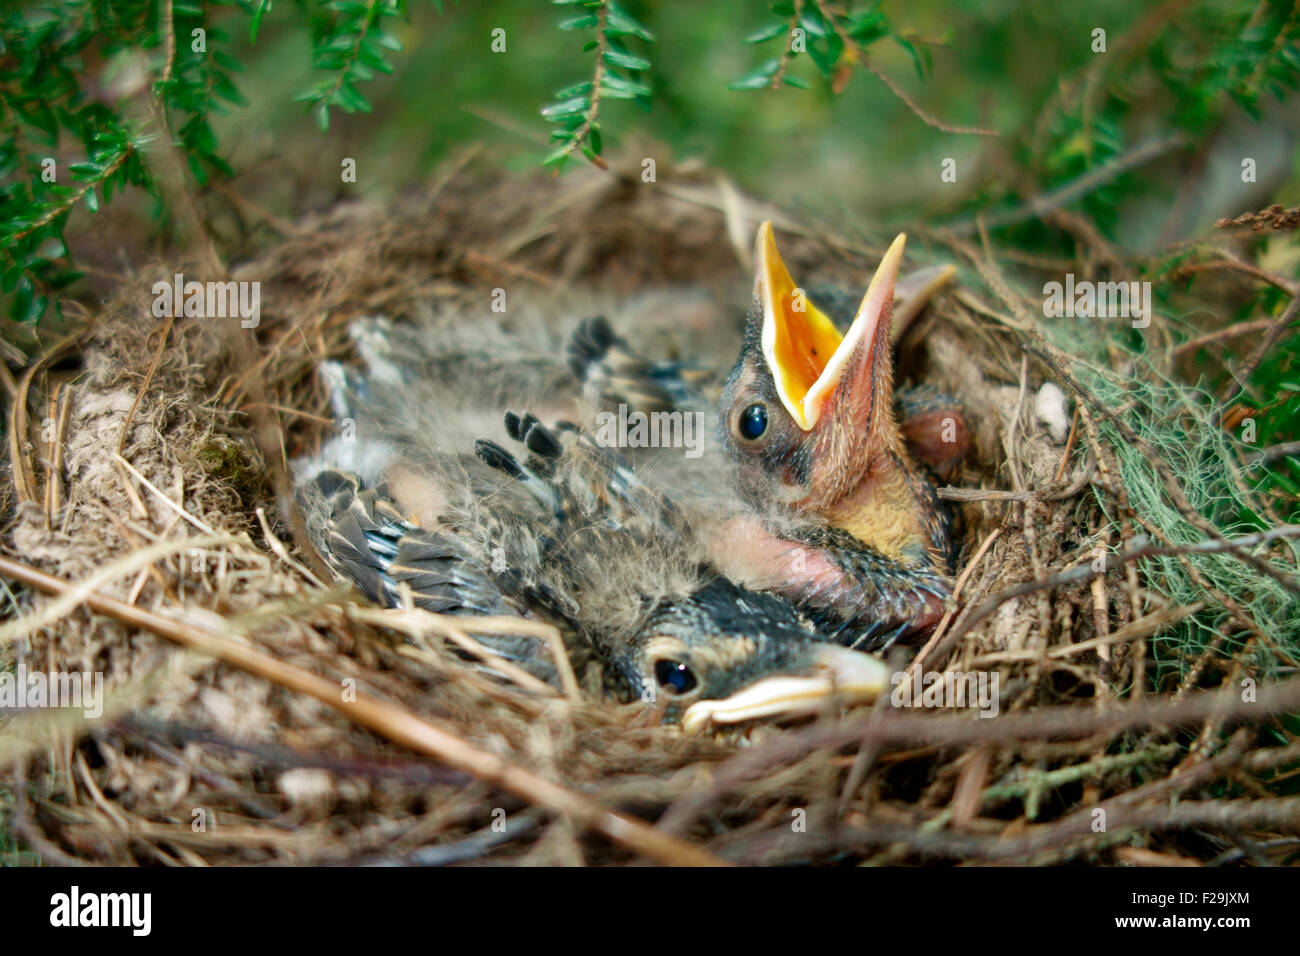 A nest of young American Robin bird birds babies fledglings hatchlings nestlings - Stock Image